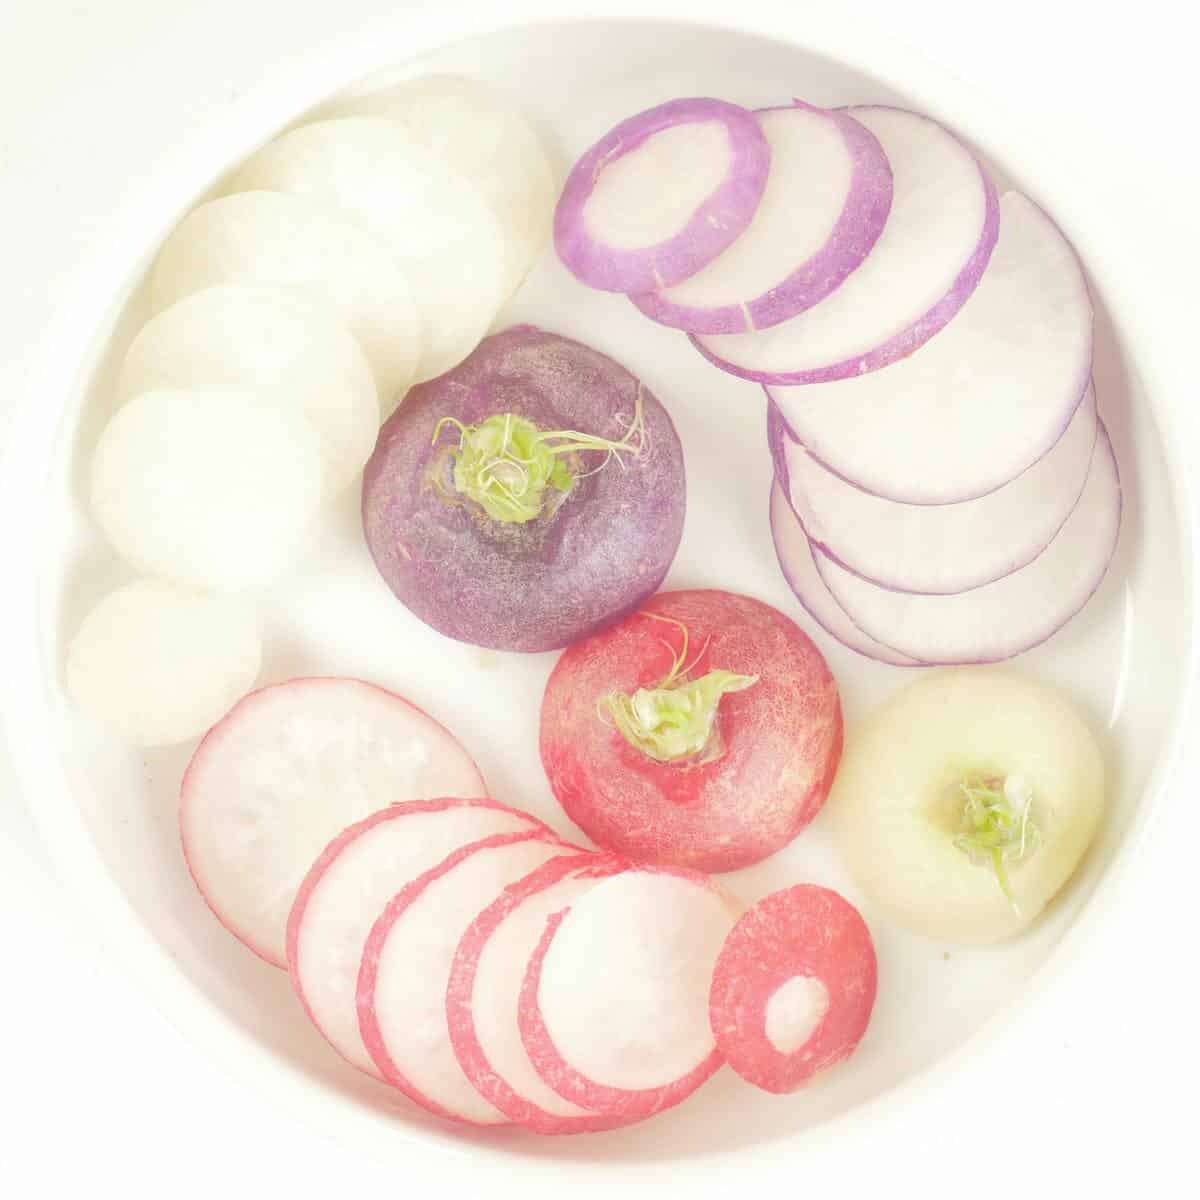 Taco Filling Ideas - Indianish - Three colors of radishes sliced to topping.